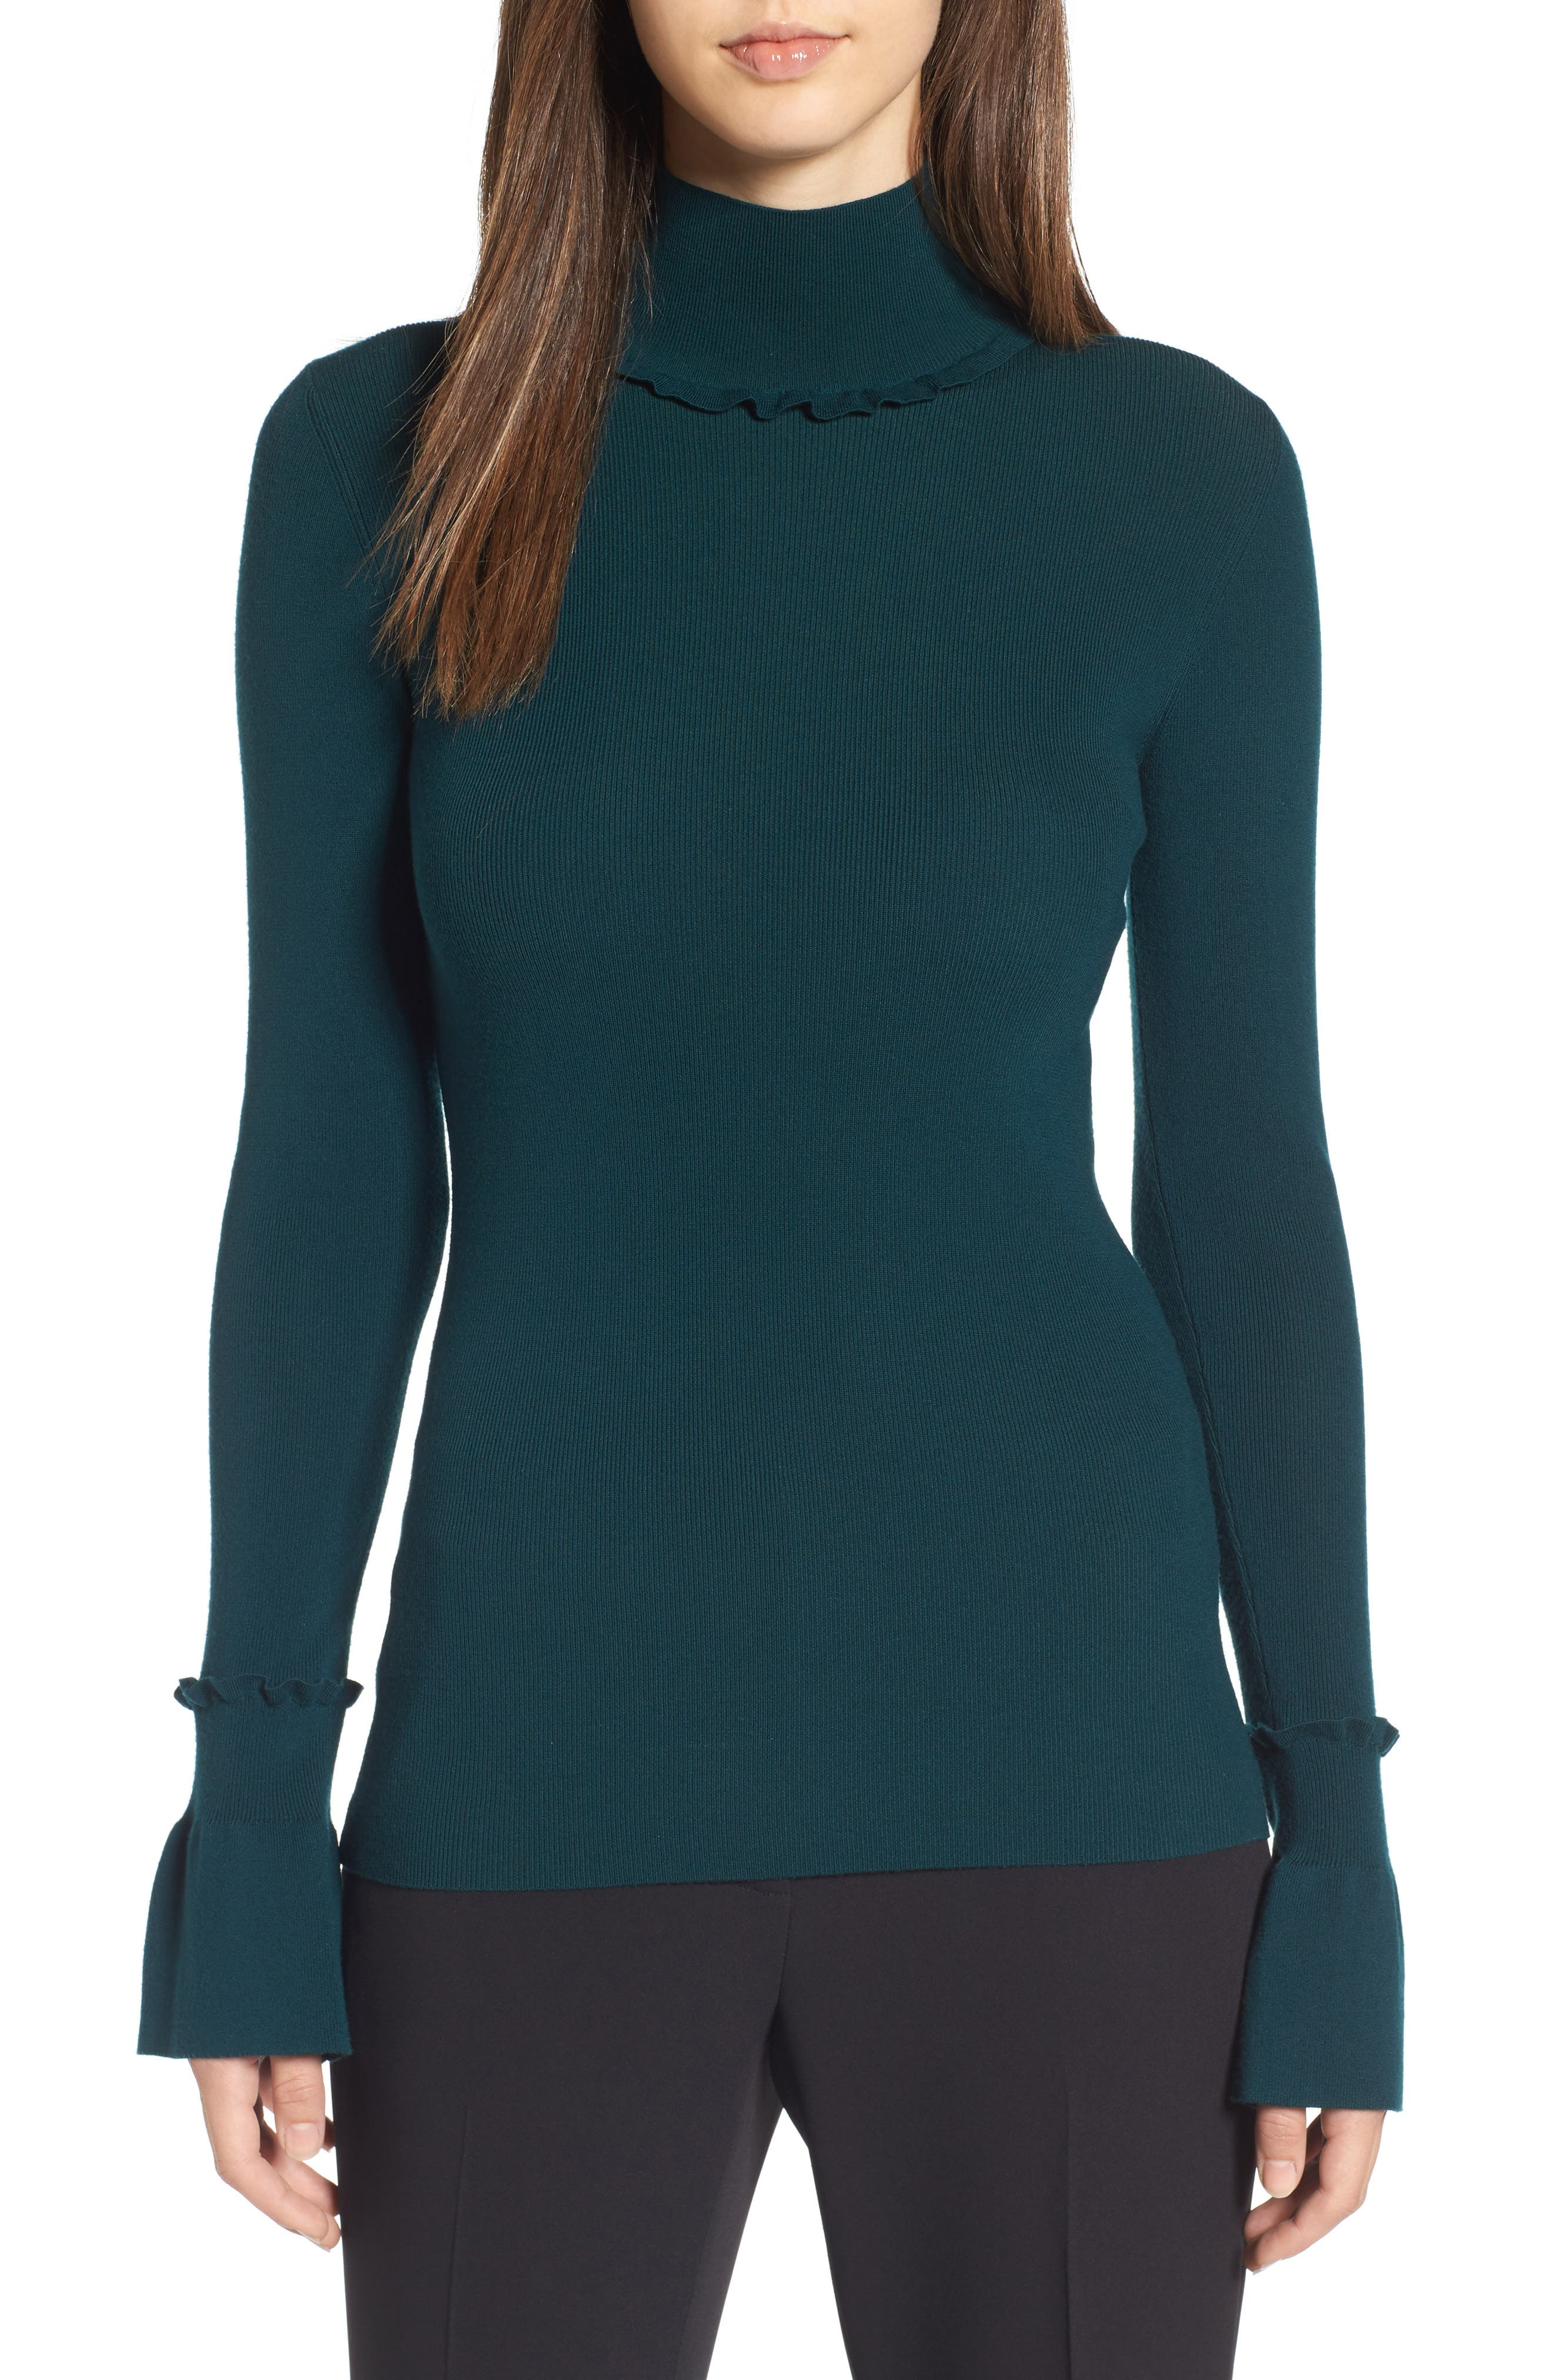 Main Image - Lewit Ruffle Detail Pullover